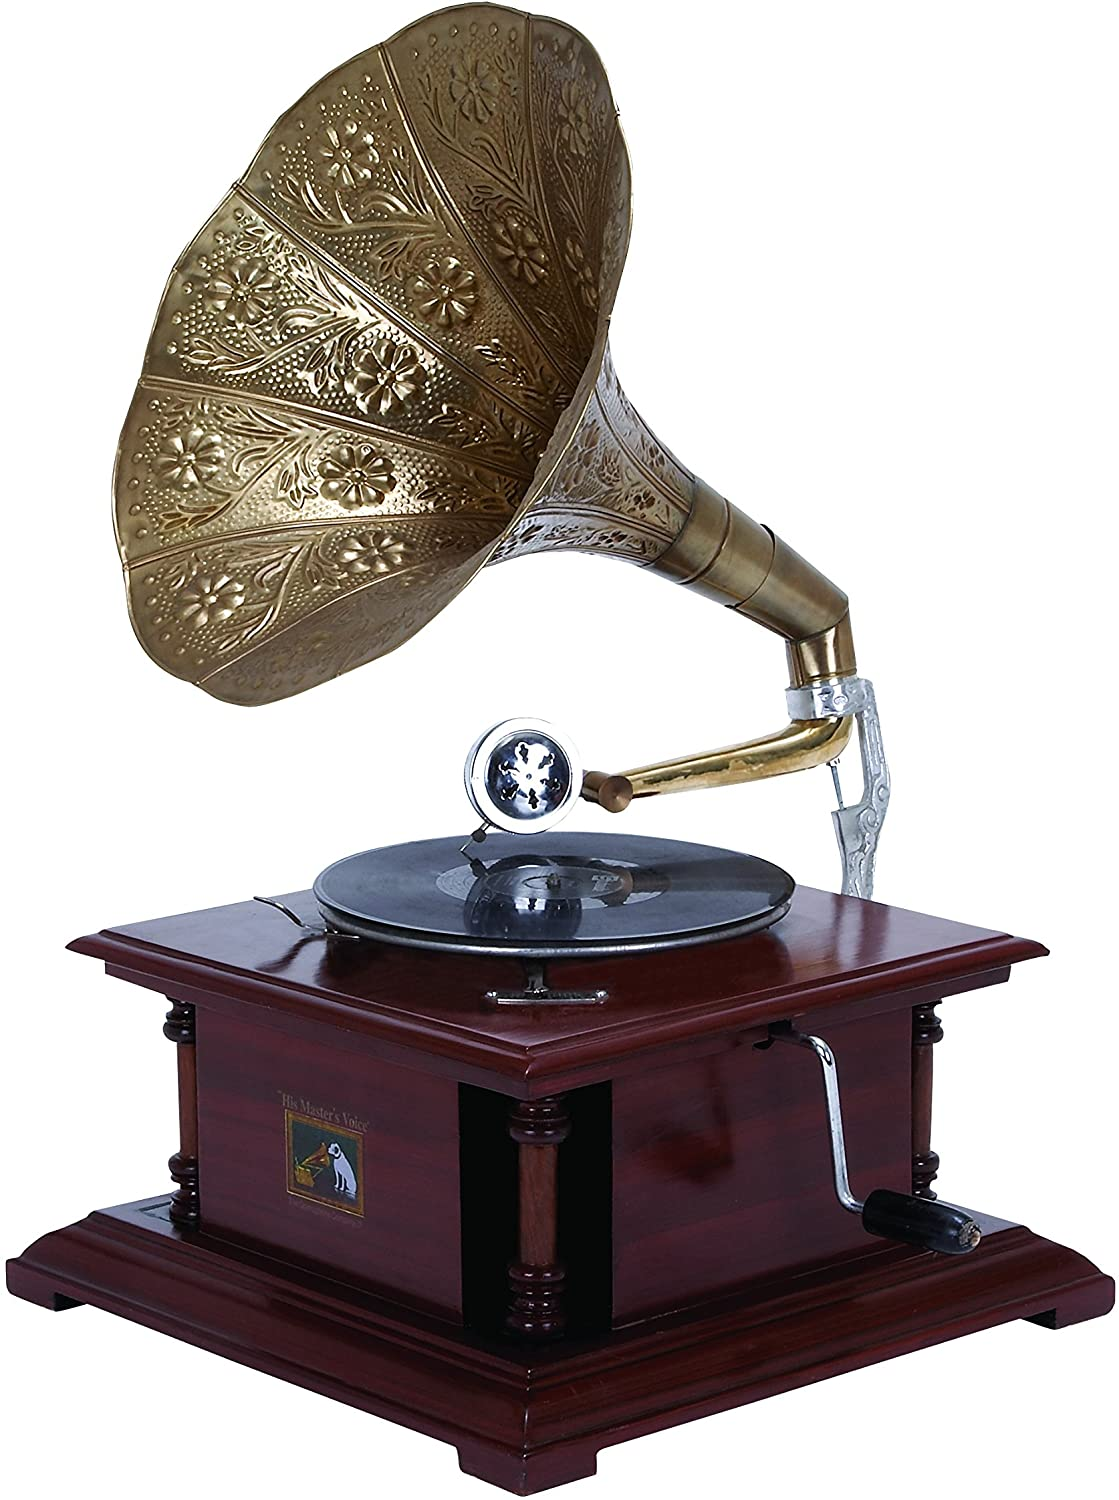 Deco 79 Wood Metal Gramophone an Excellent Home Decor